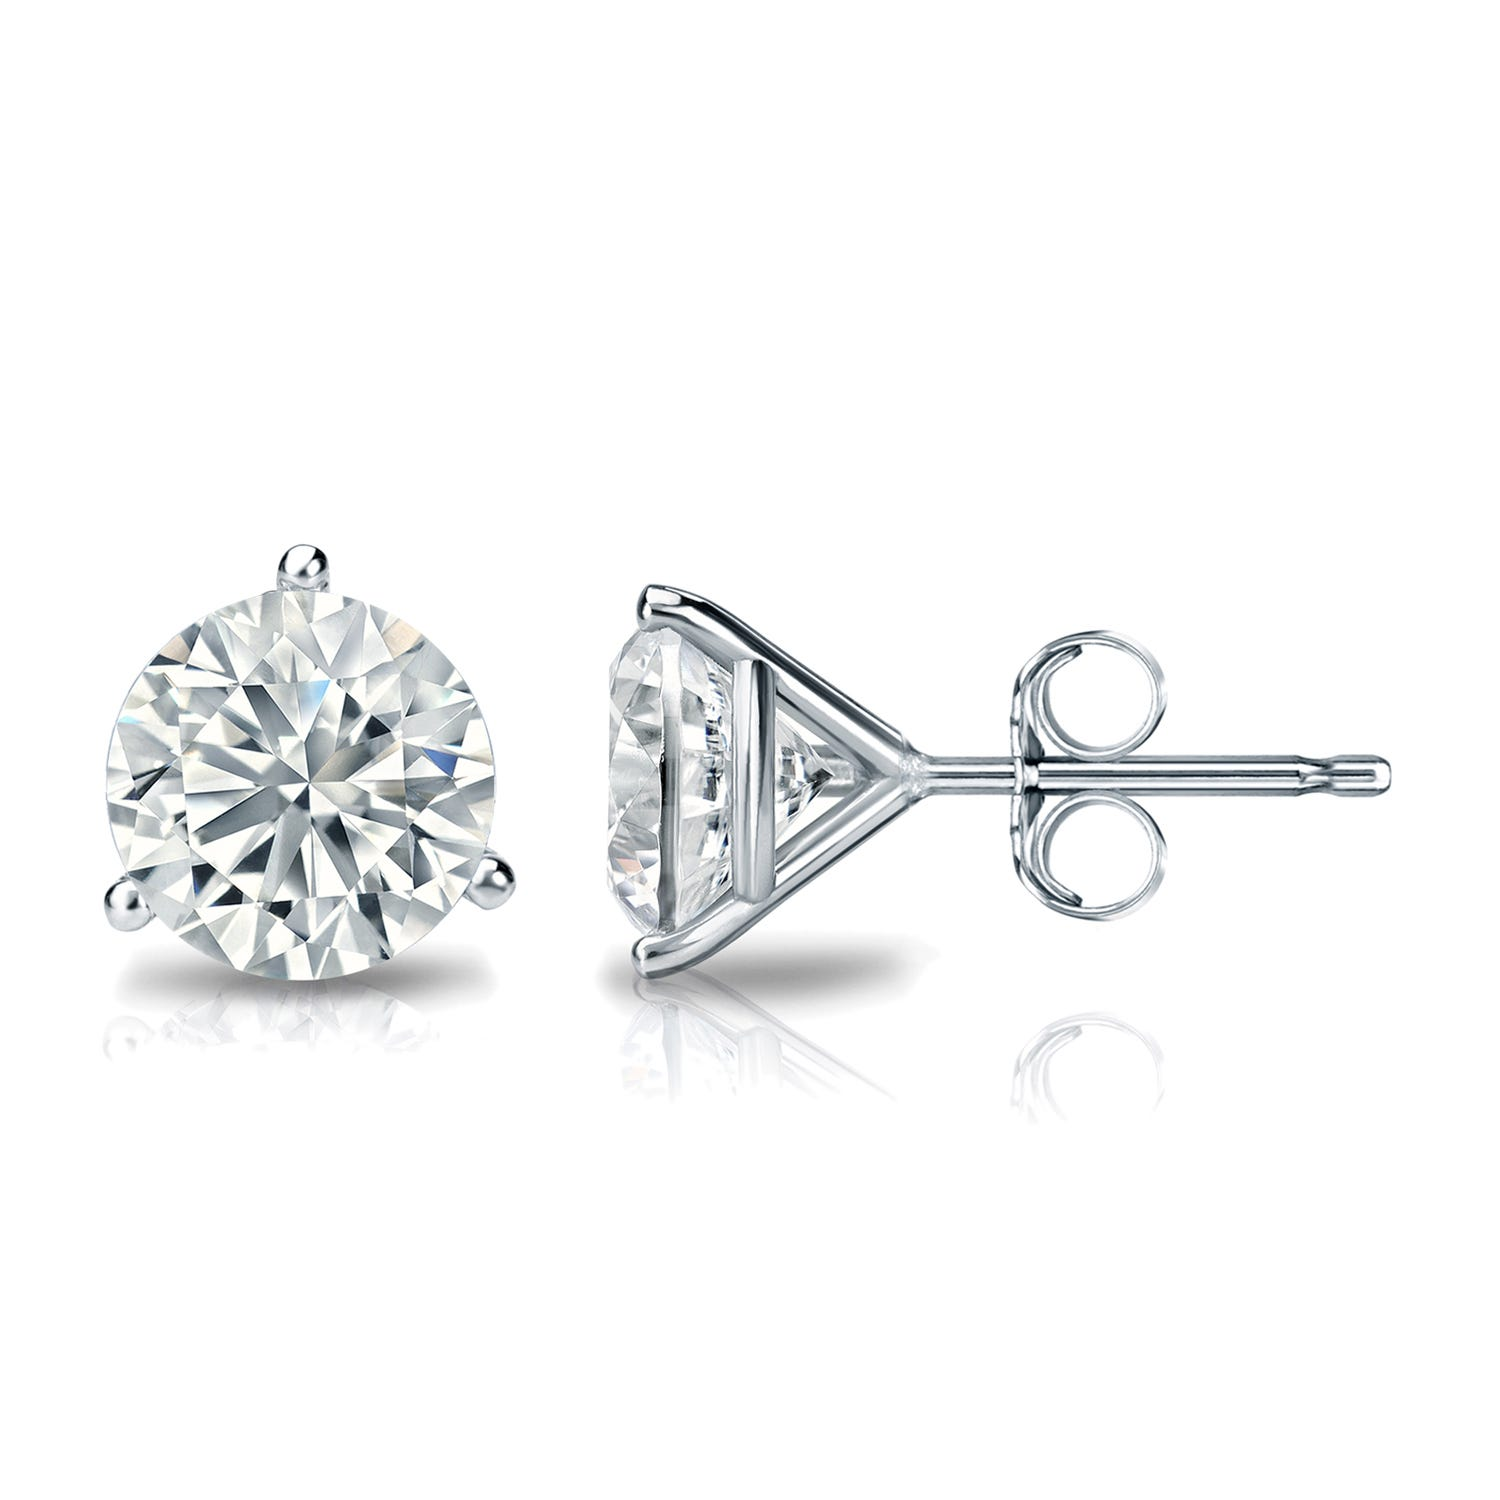 1-1/2 CTTW Round Diamond Solitaire Stud Earrings IJ SI2 in 18K White Gold IGI Certified 3-Prong Setting